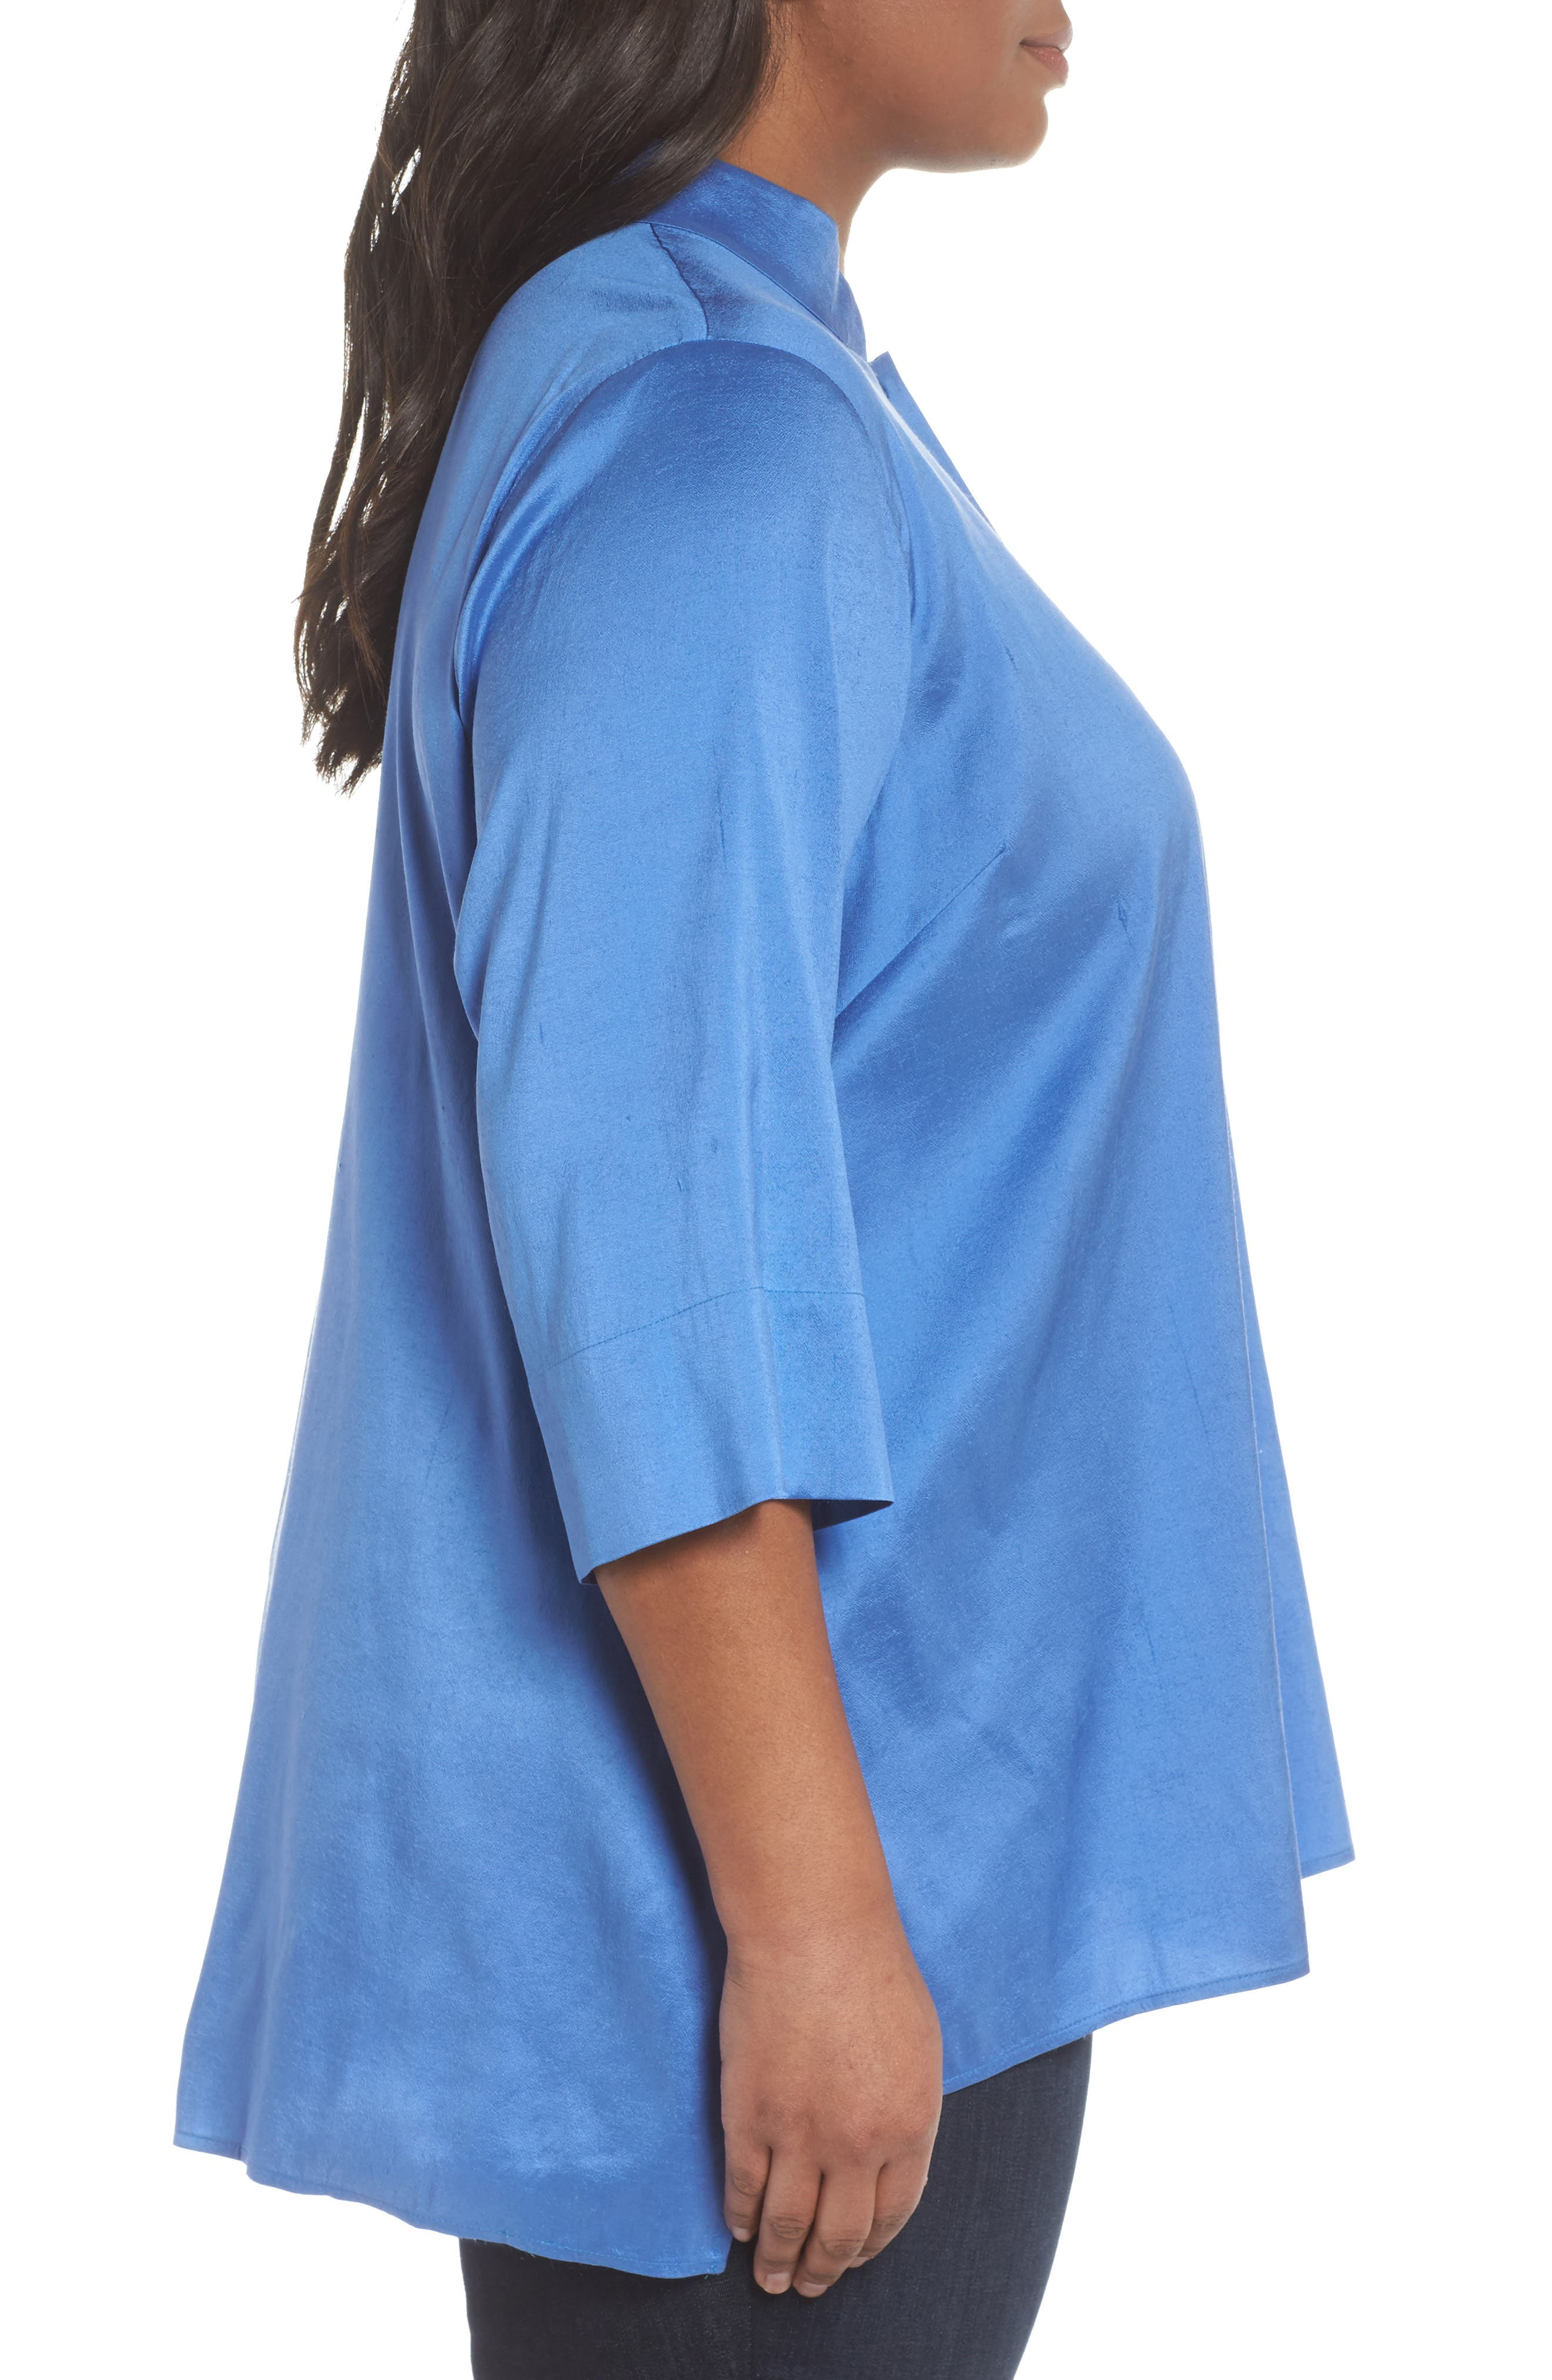 Notch Collar Shirt,                             Alternate thumbnail 3, color,                             Blue Bell